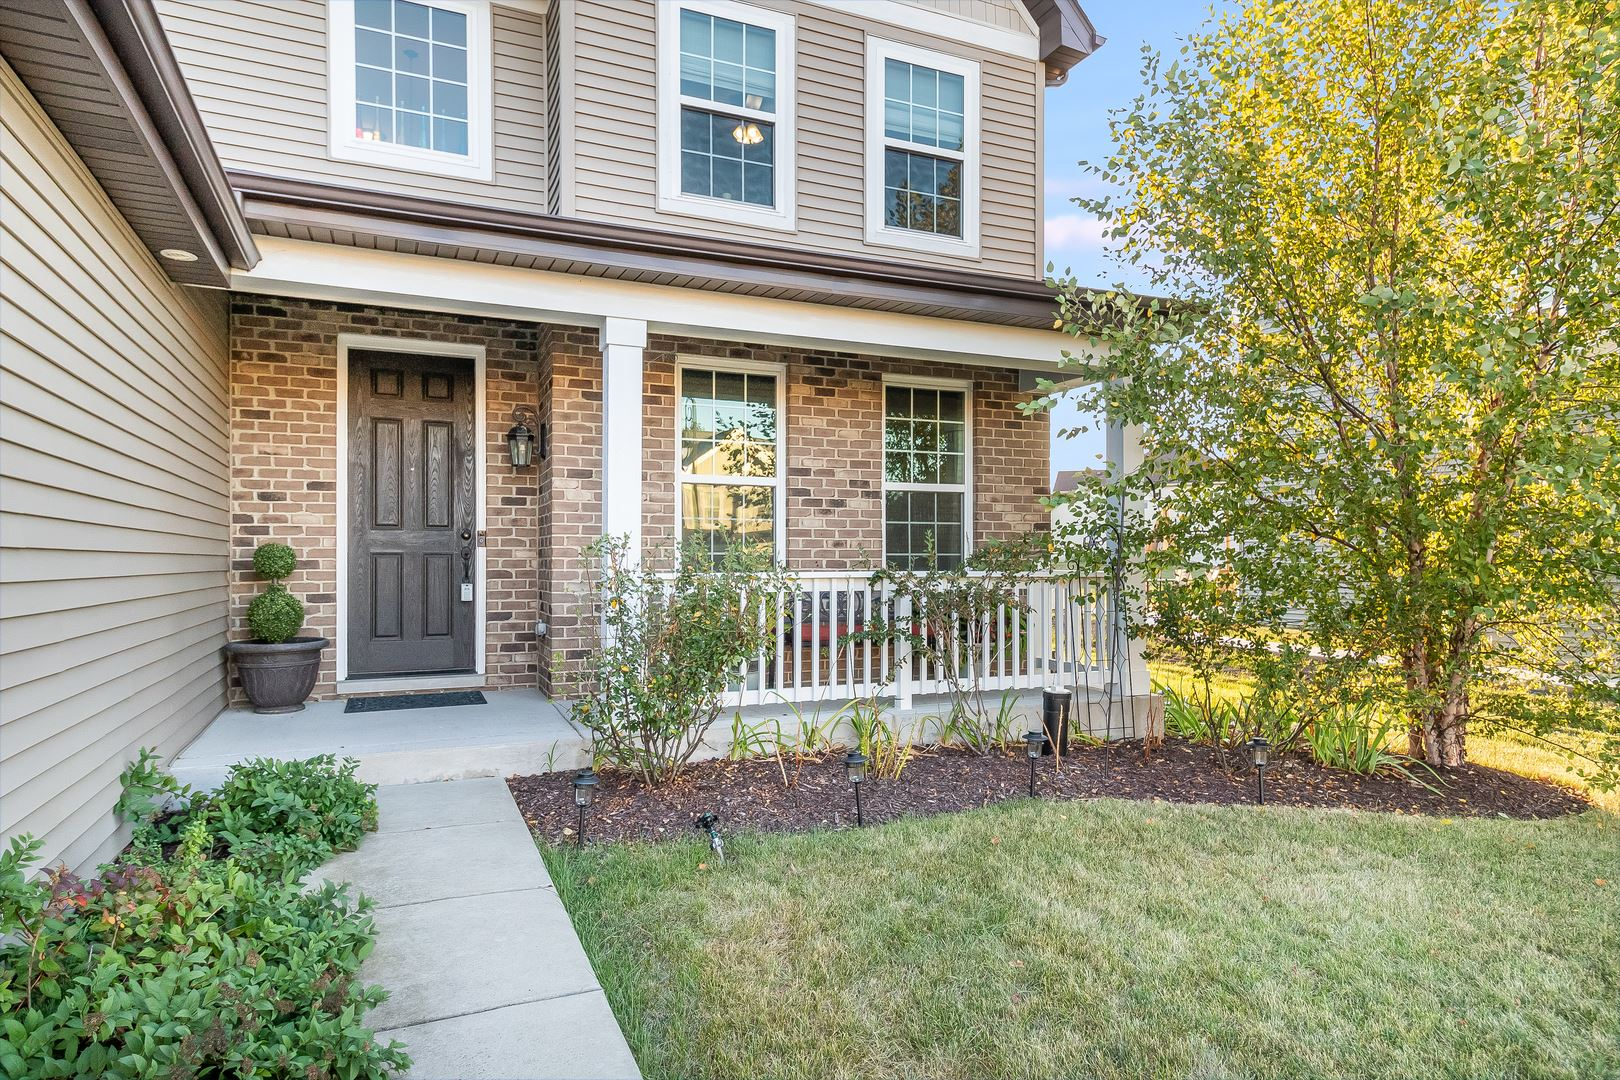 Photo of 21420 Willow Pass, Shorewood, IL 60404 (MLS # 10824558)